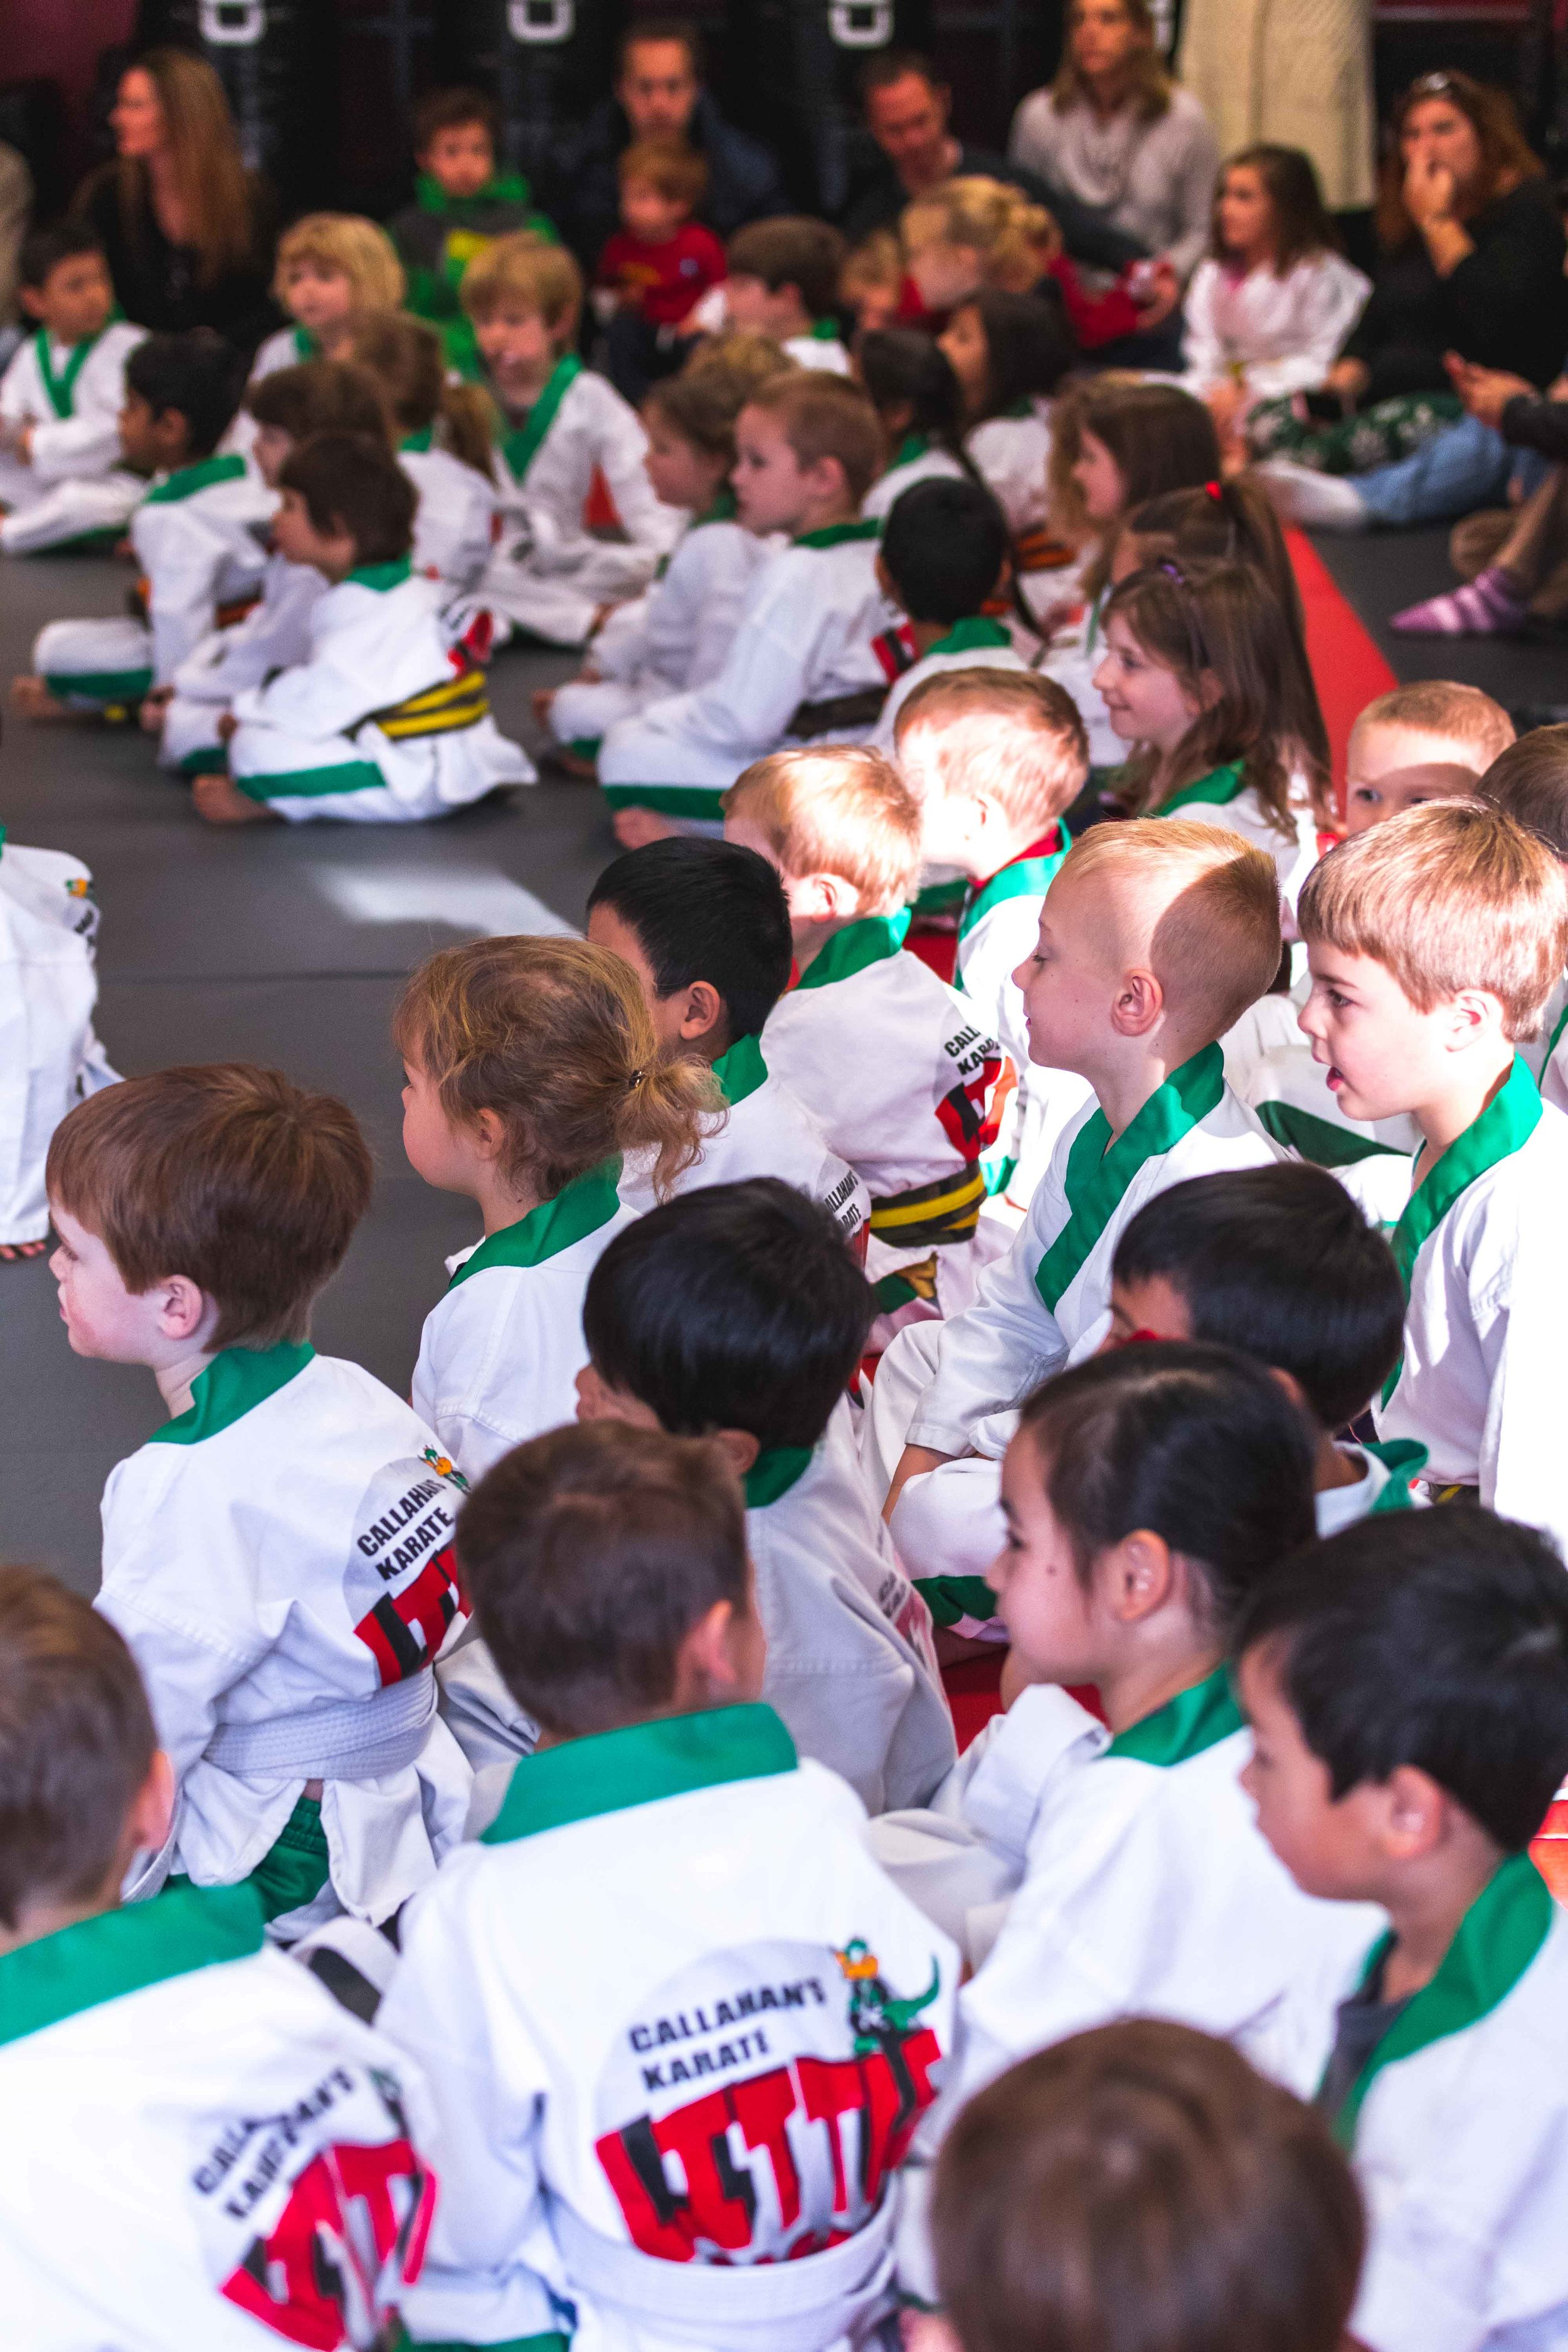 Callahans Karate Family Martial Arts Studio Bedford MA Classes for Kids teenagers and adults in Bedford MA 2.jpg